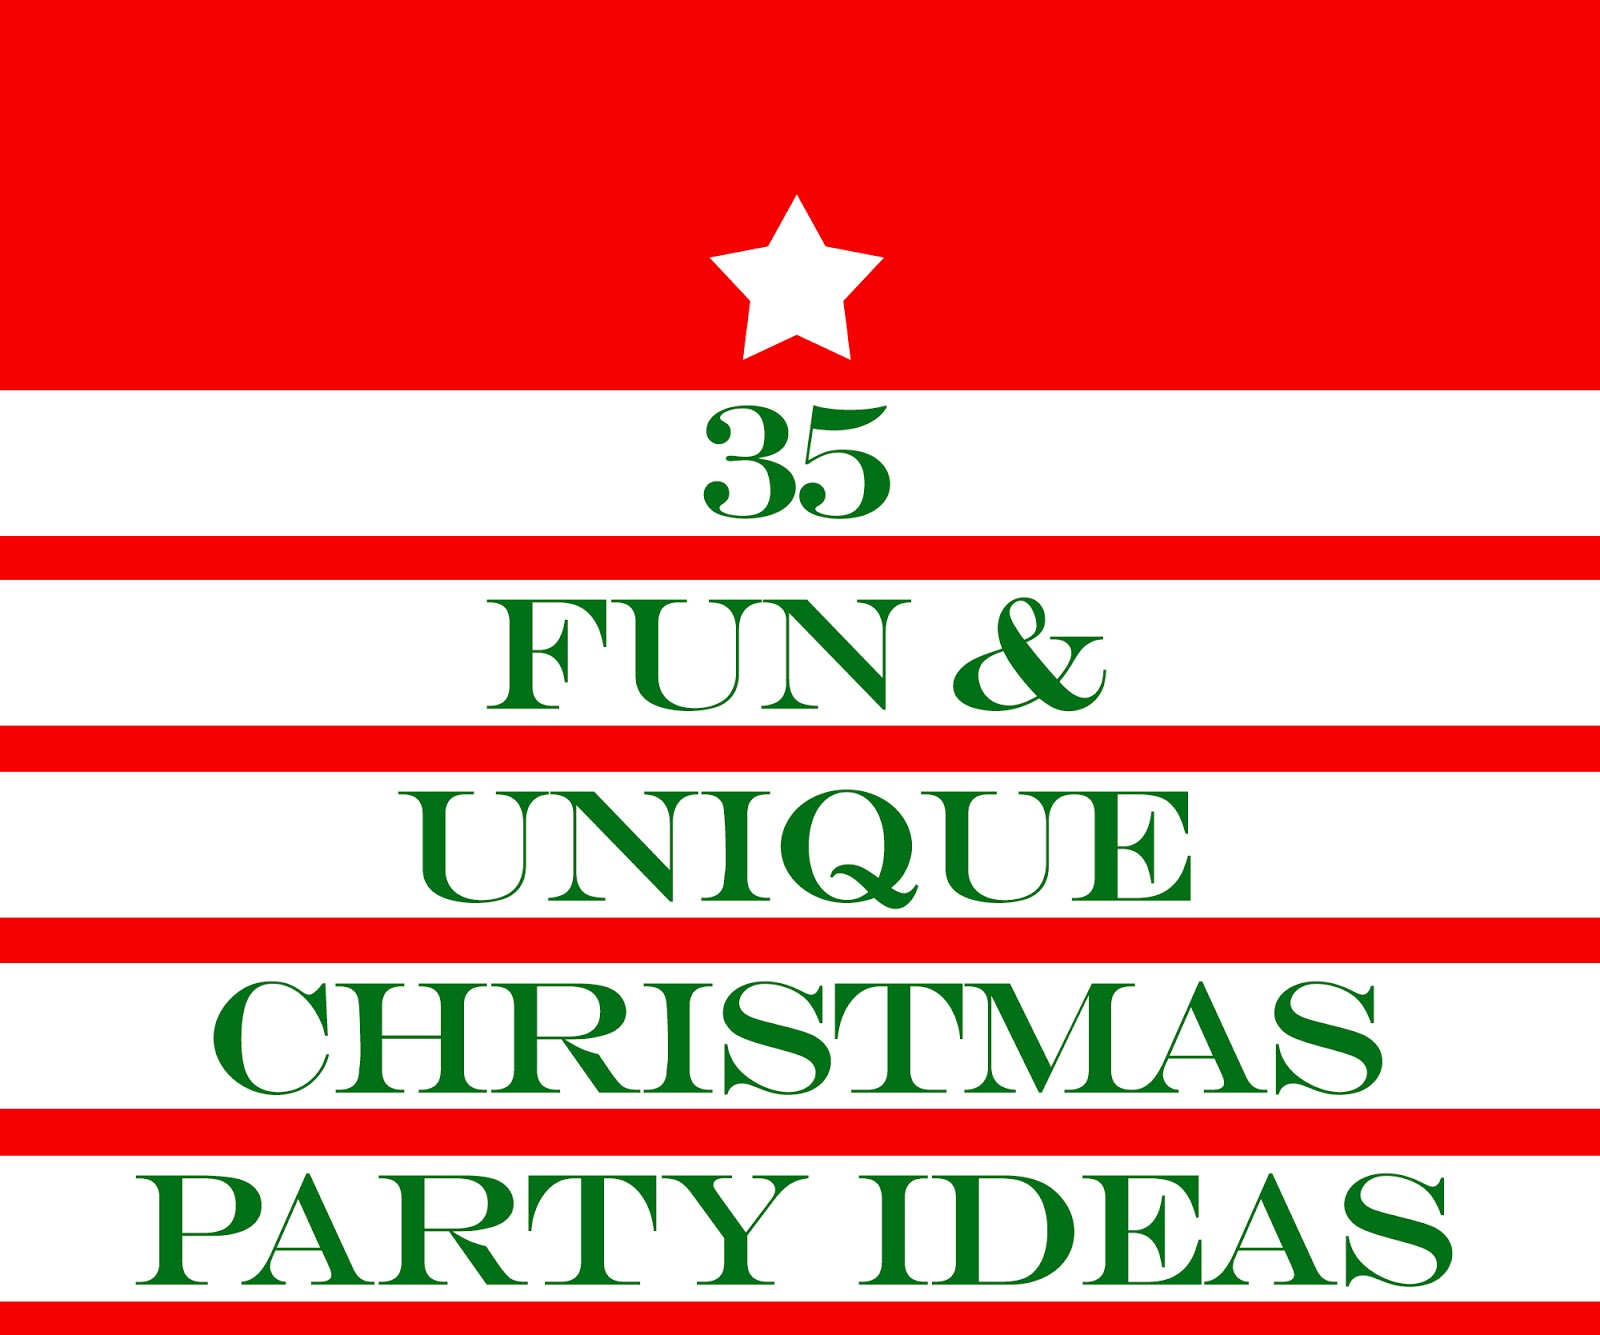 35 Fun Christmas Party Ideas & Themes